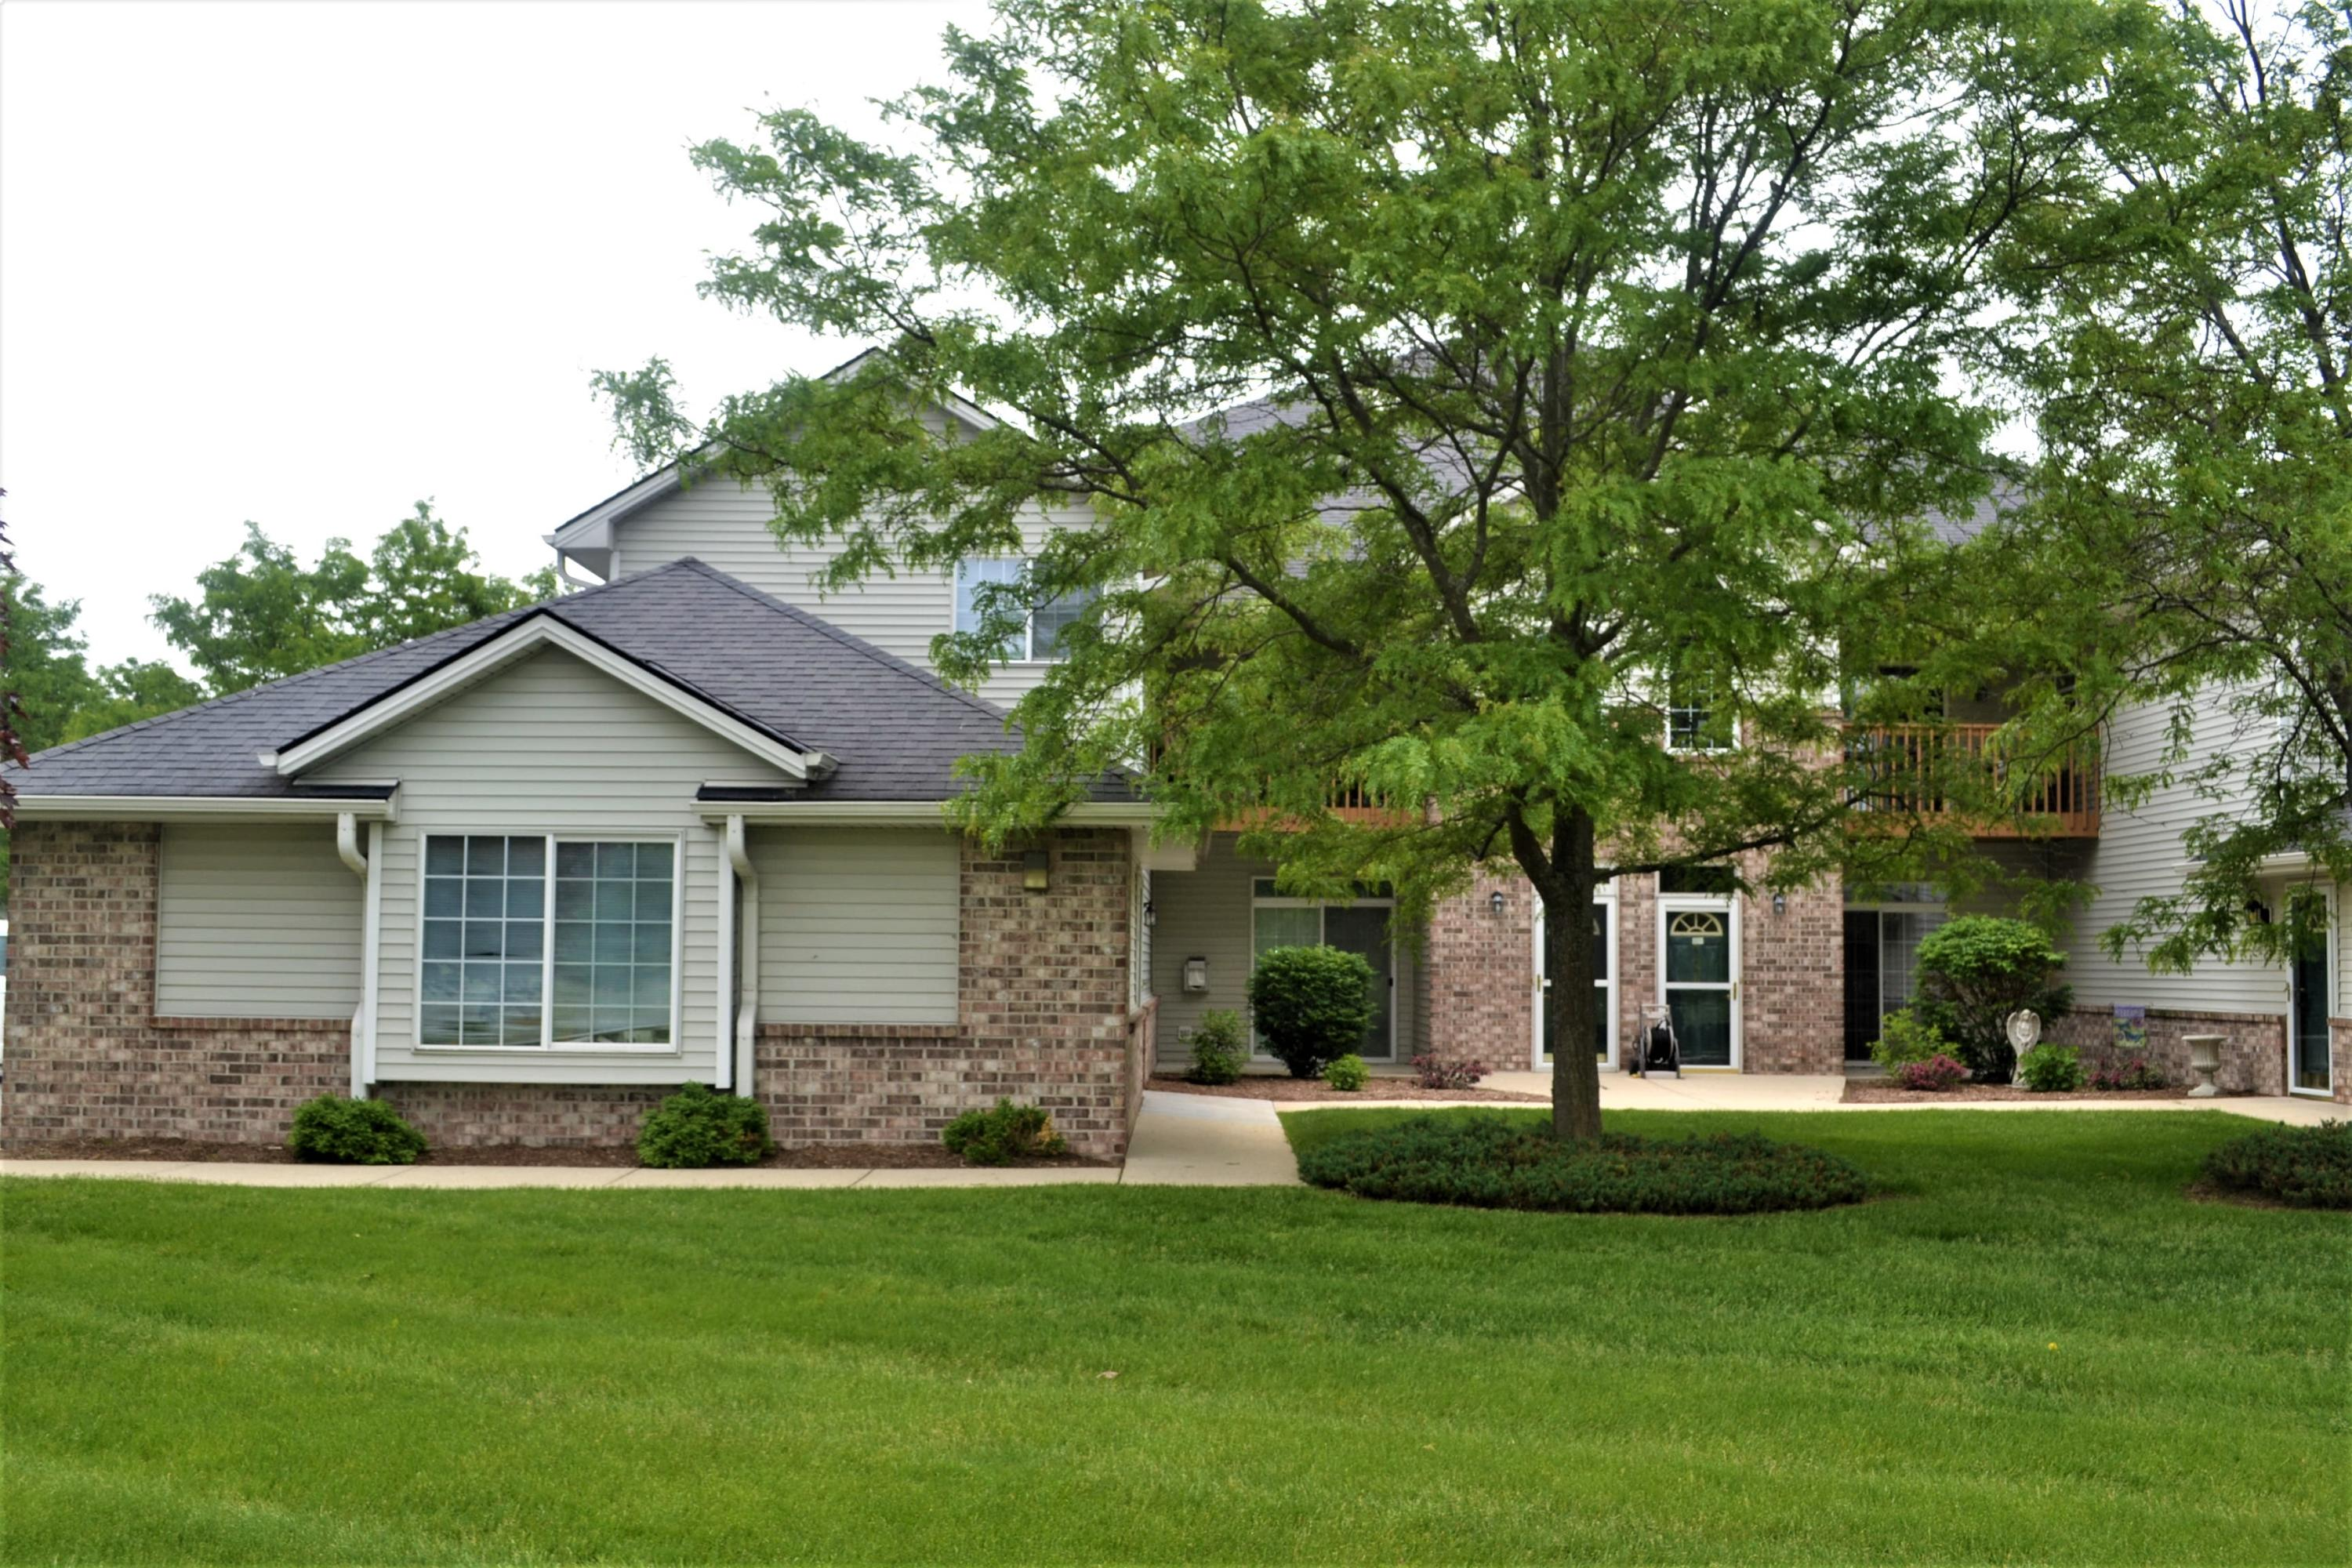 4834 Maple Leaf Cir, Greenfield, Wisconsin 53220, 2 Bedrooms Bedrooms, 4 Rooms Rooms,2 BathroomsBathrooms,Condominiums,For Sale,Maple Leaf Cir,1,1643583